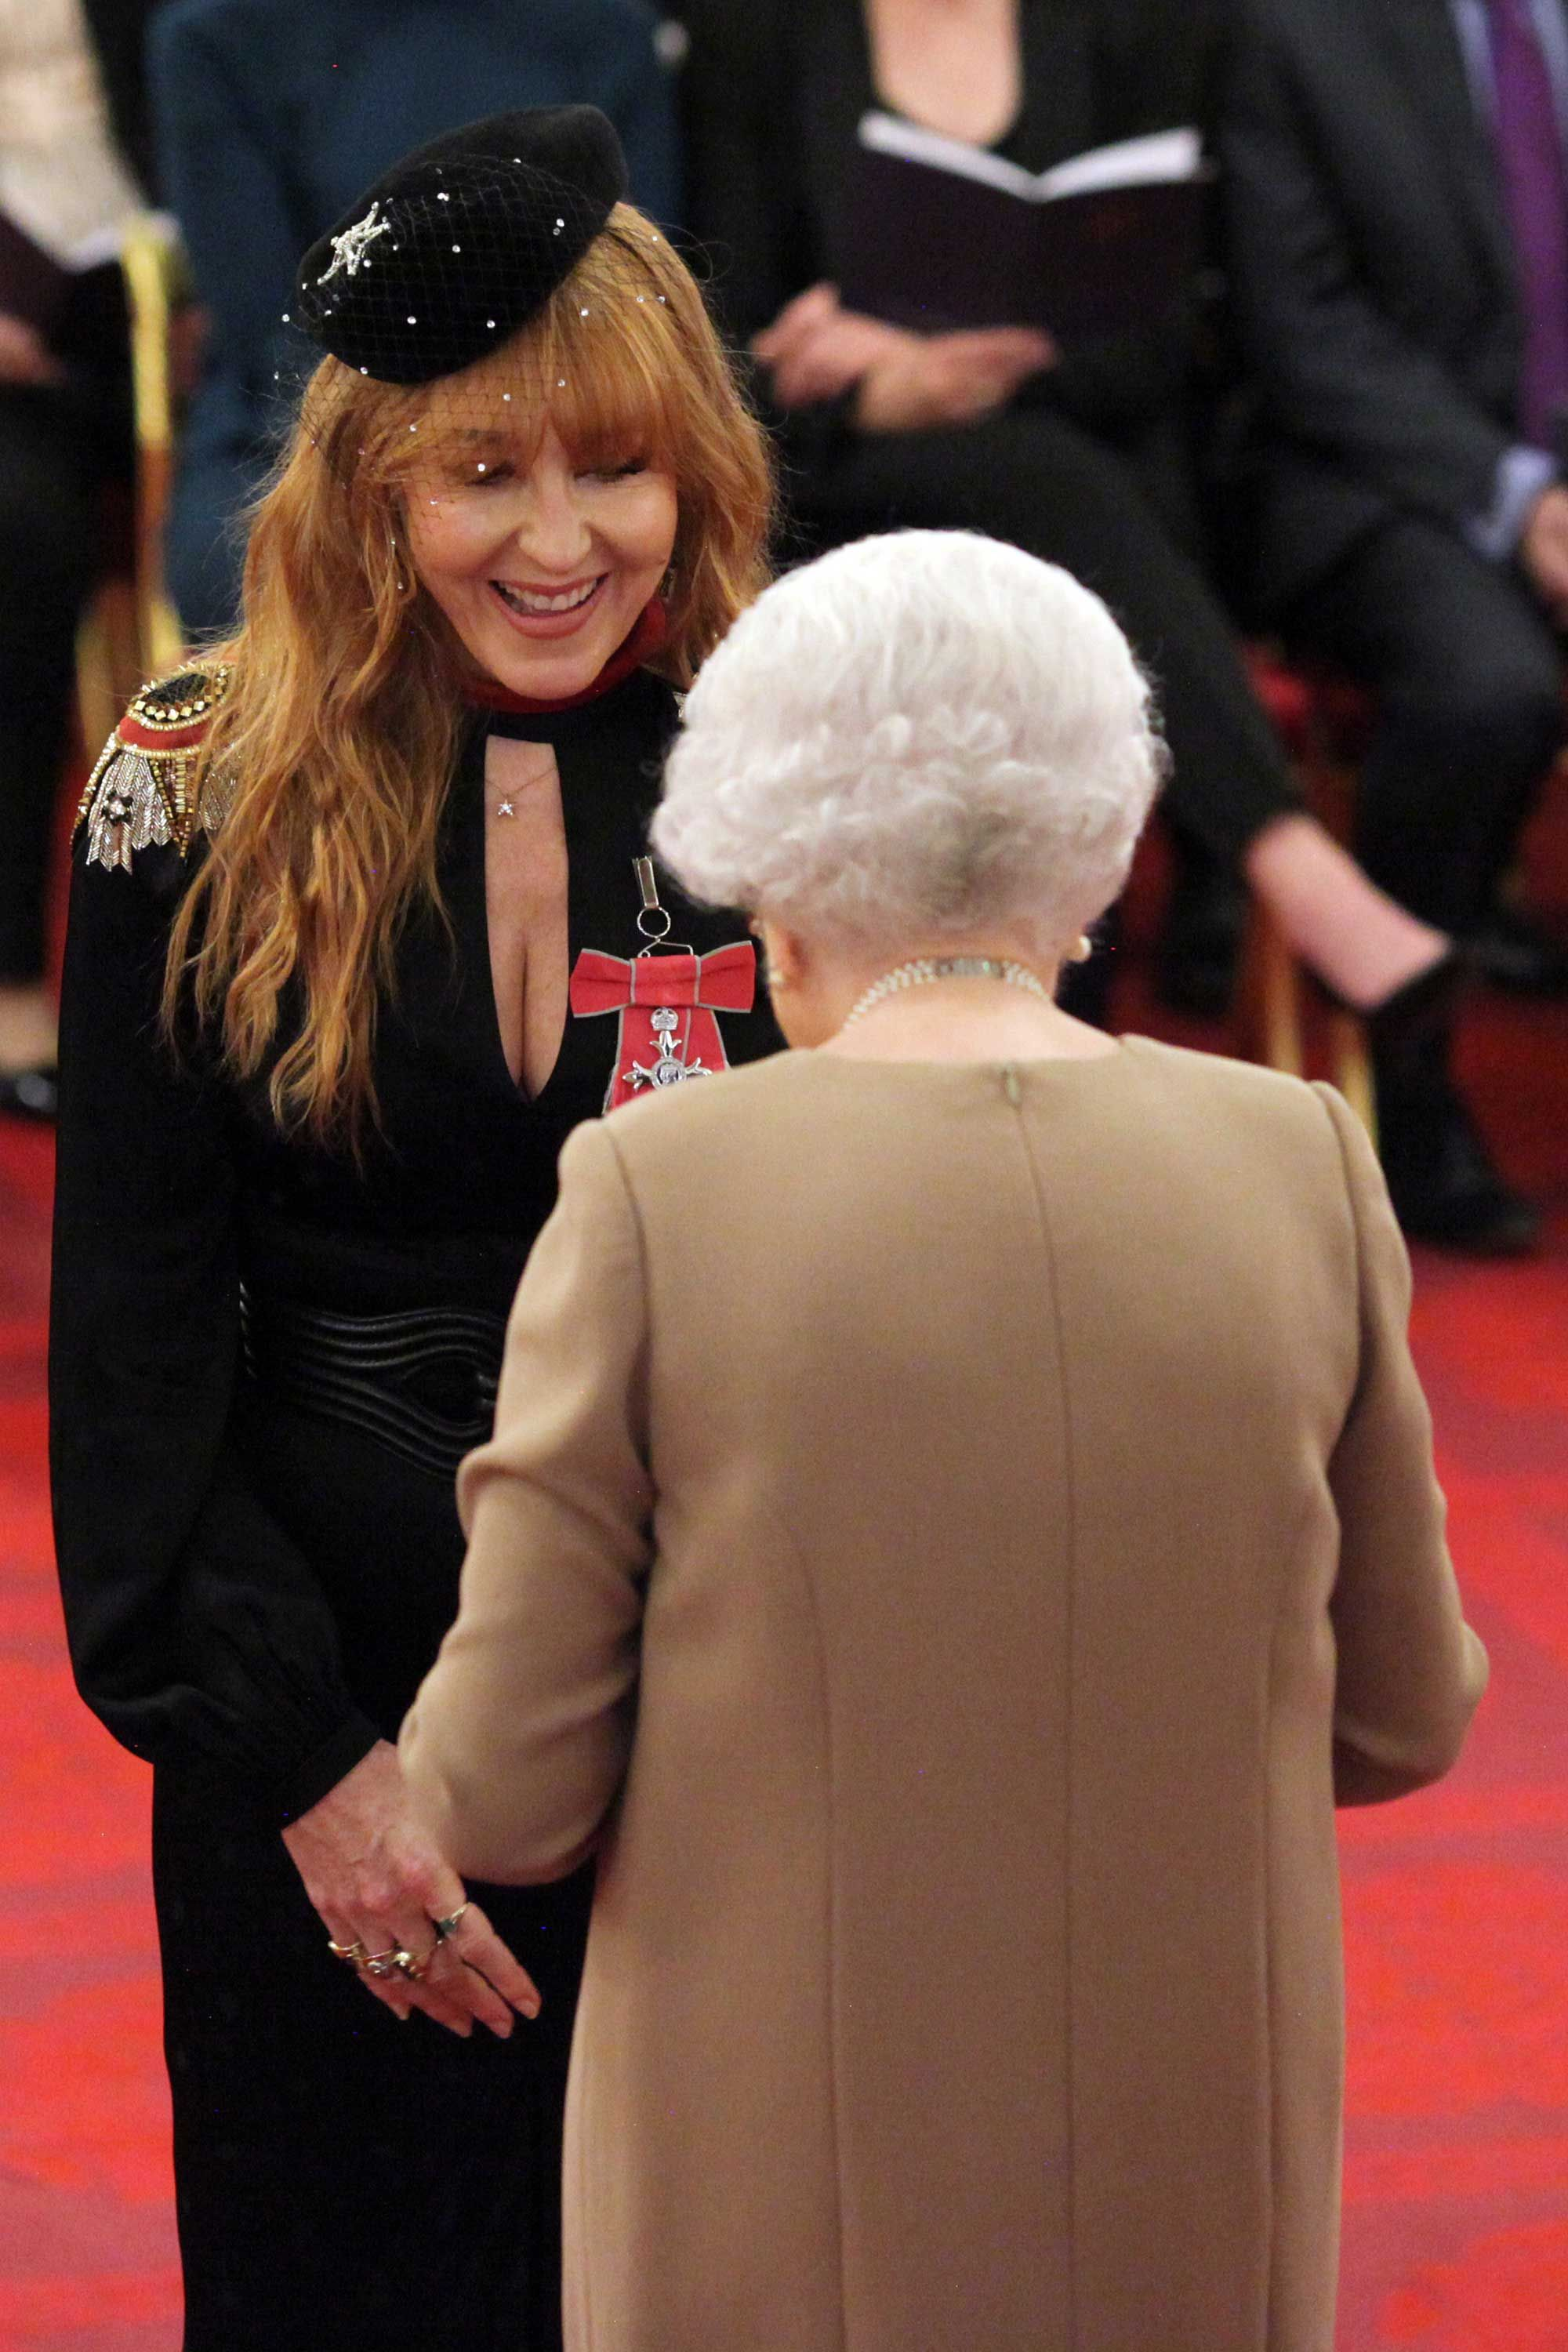 Charlotte Tilbury shares her experiences of meeting the Queen: Id love to do her make-up